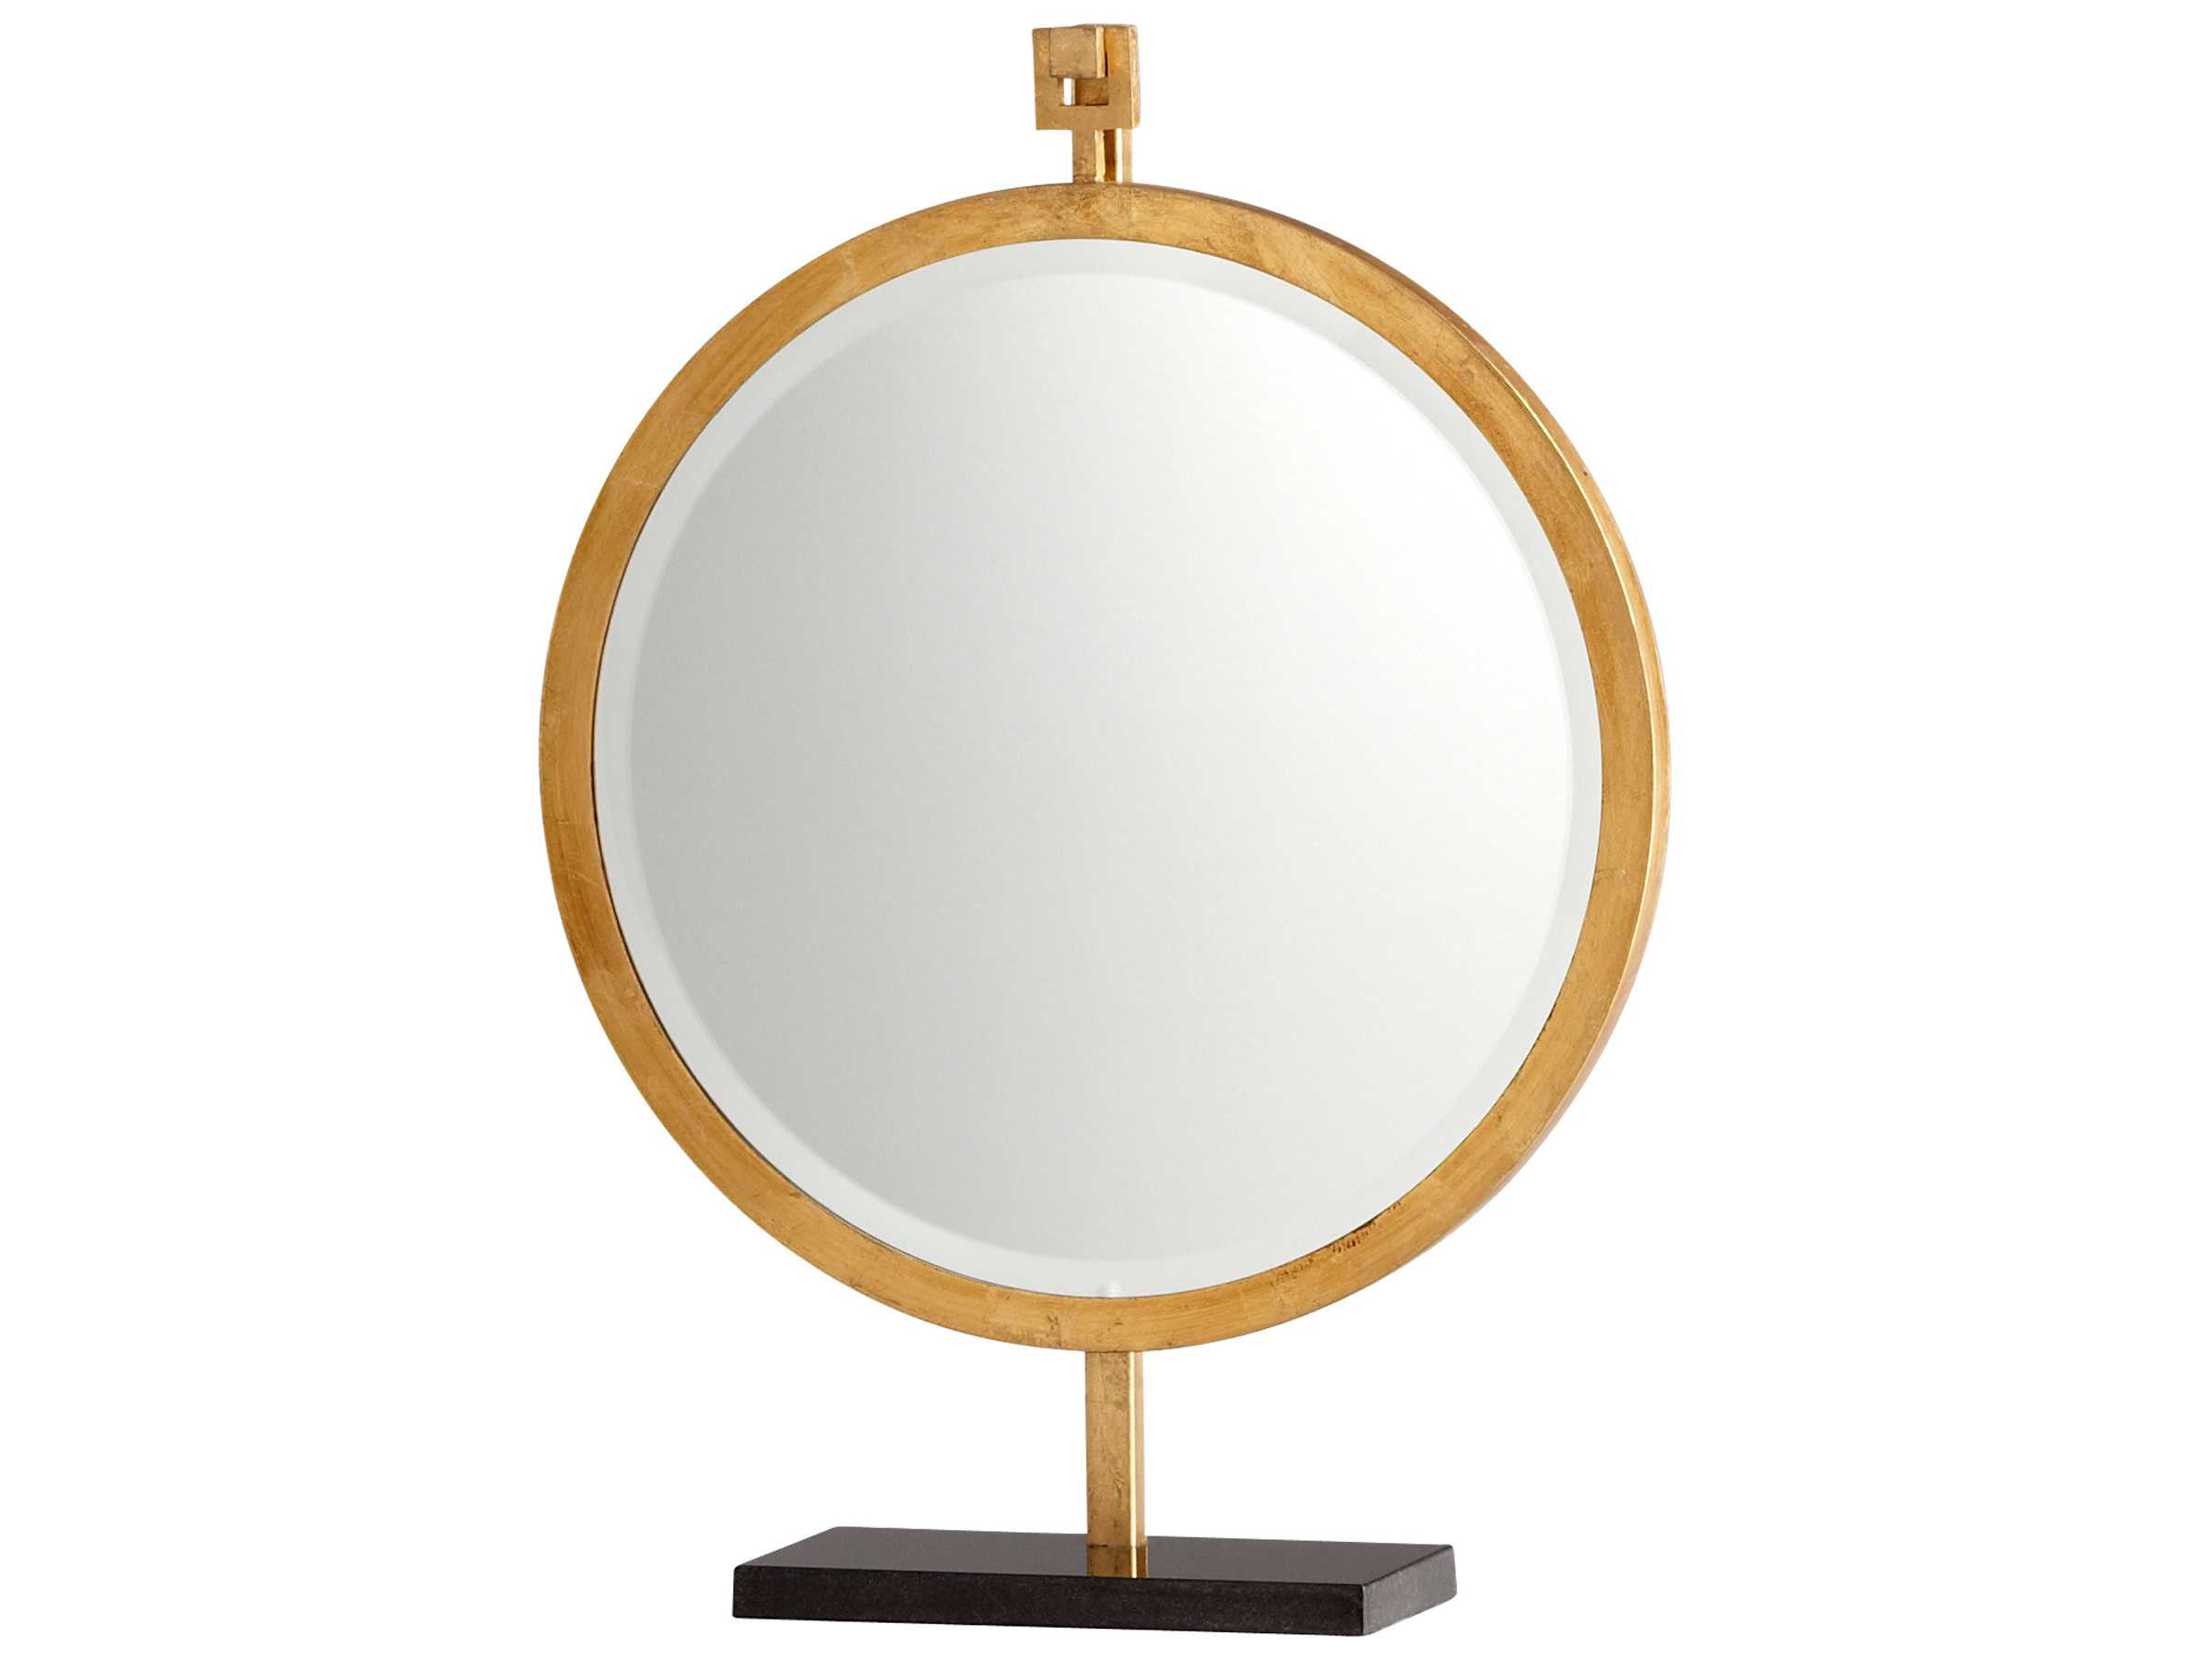 Cyan design westwood 18 x 24 gold leaf dresser mirror for Mirror 18 x 24